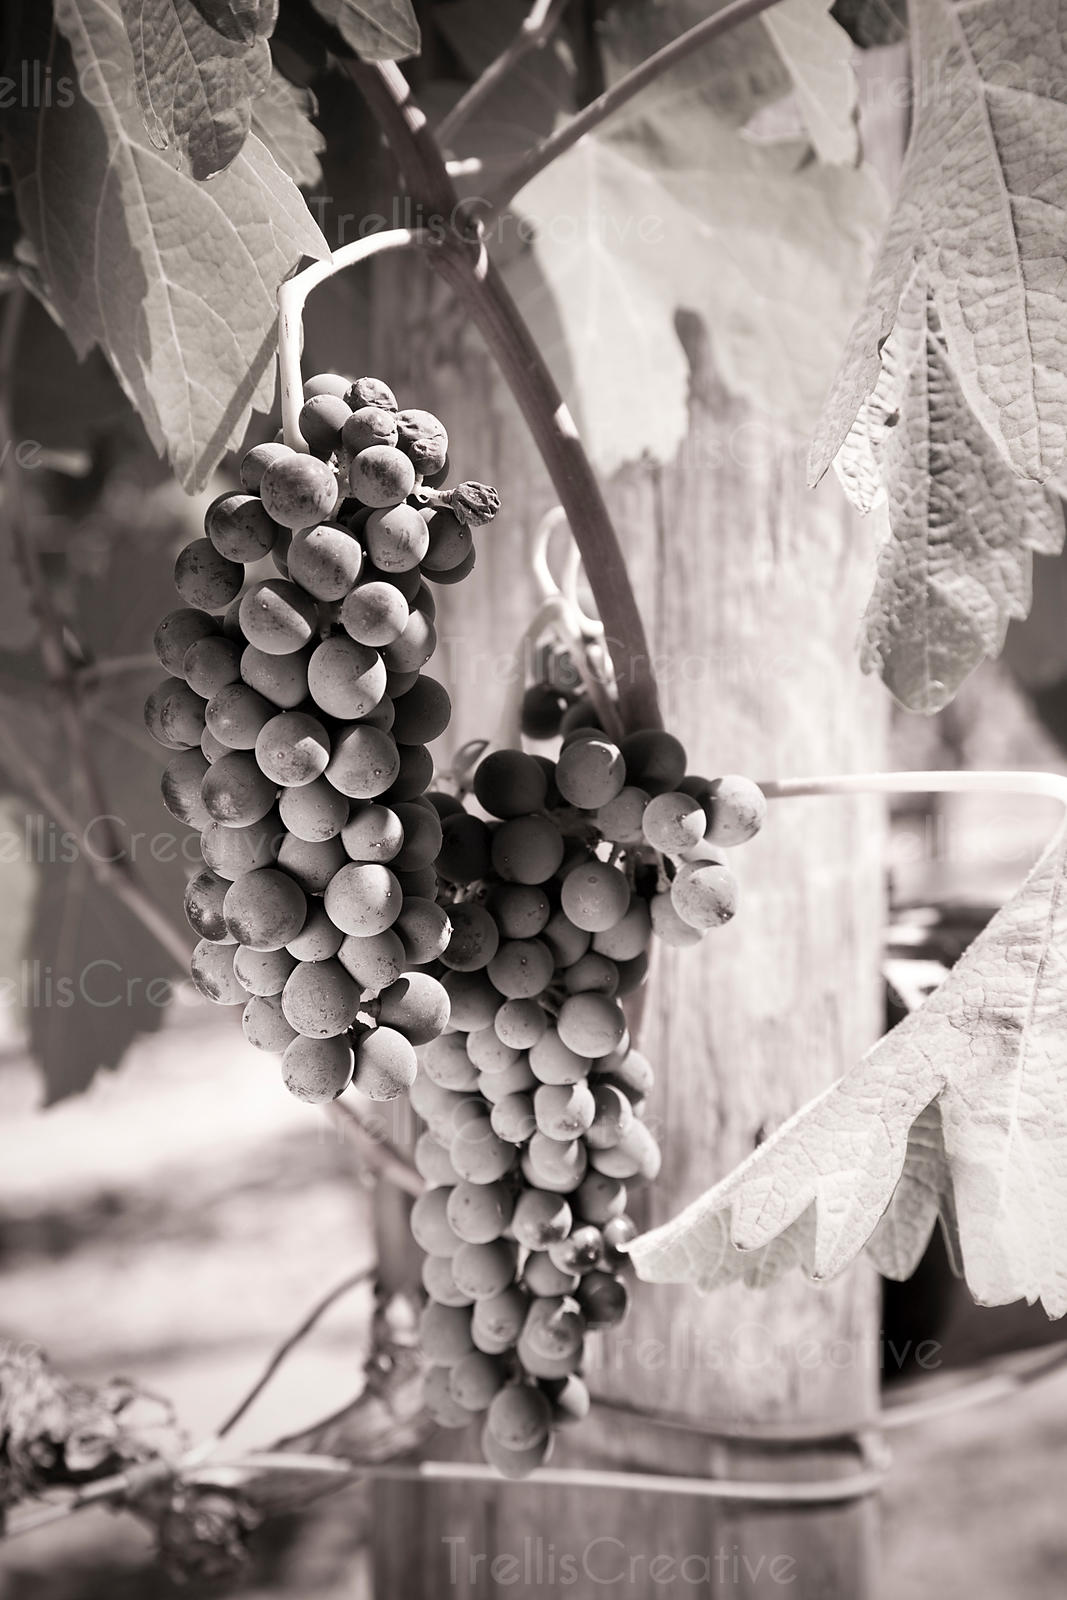 Grape clusters photos